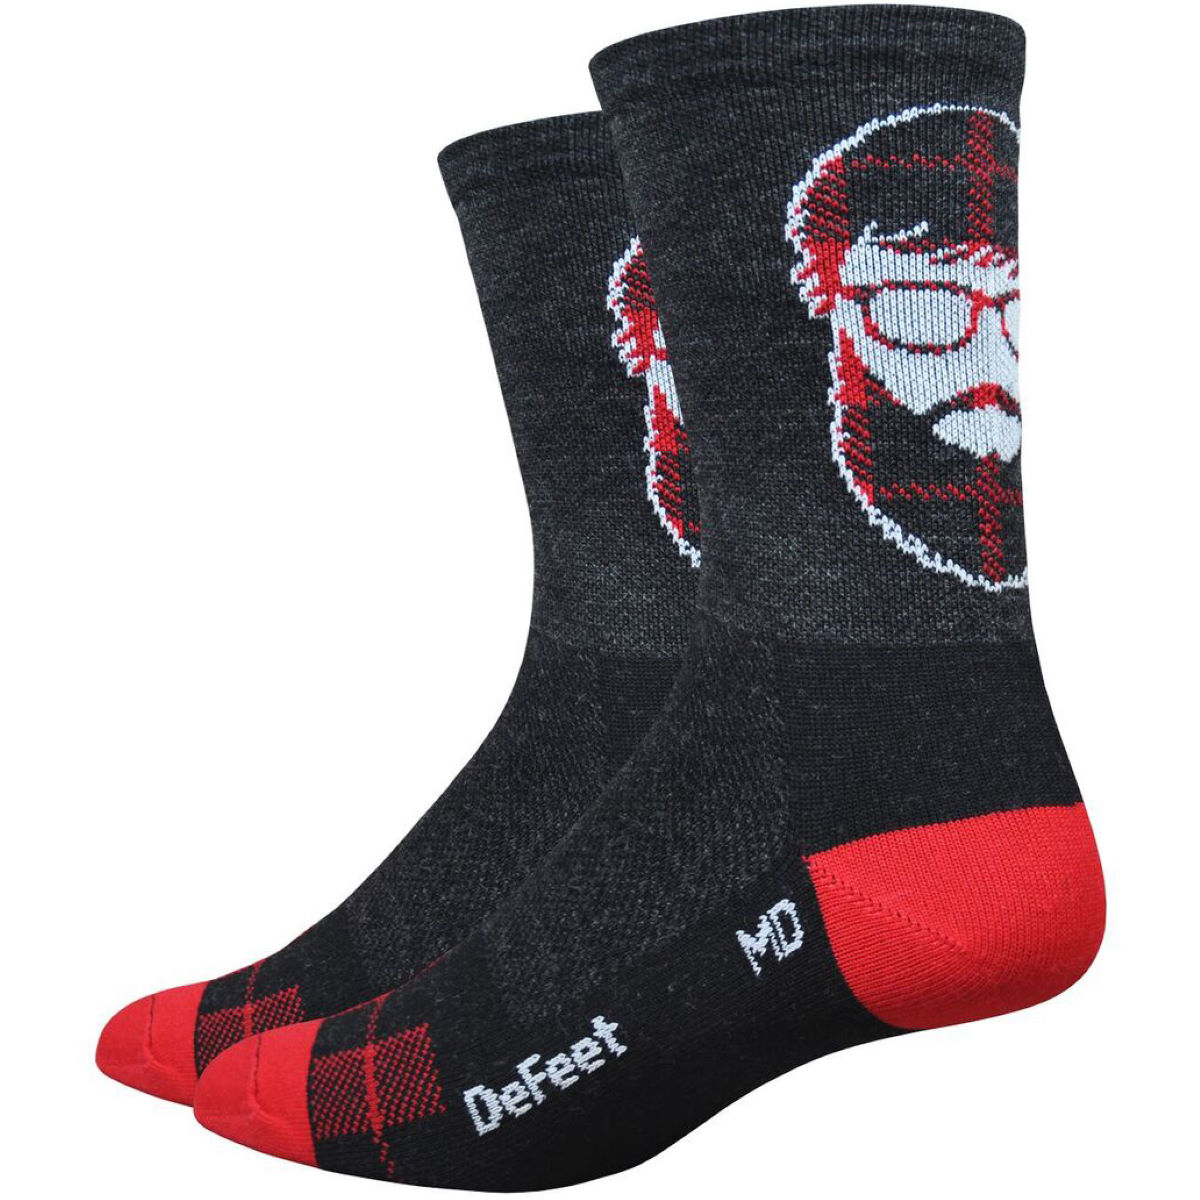 Chaussettes DeFeet Wooleator Hipster - XL Charbon Chaussettes vélo